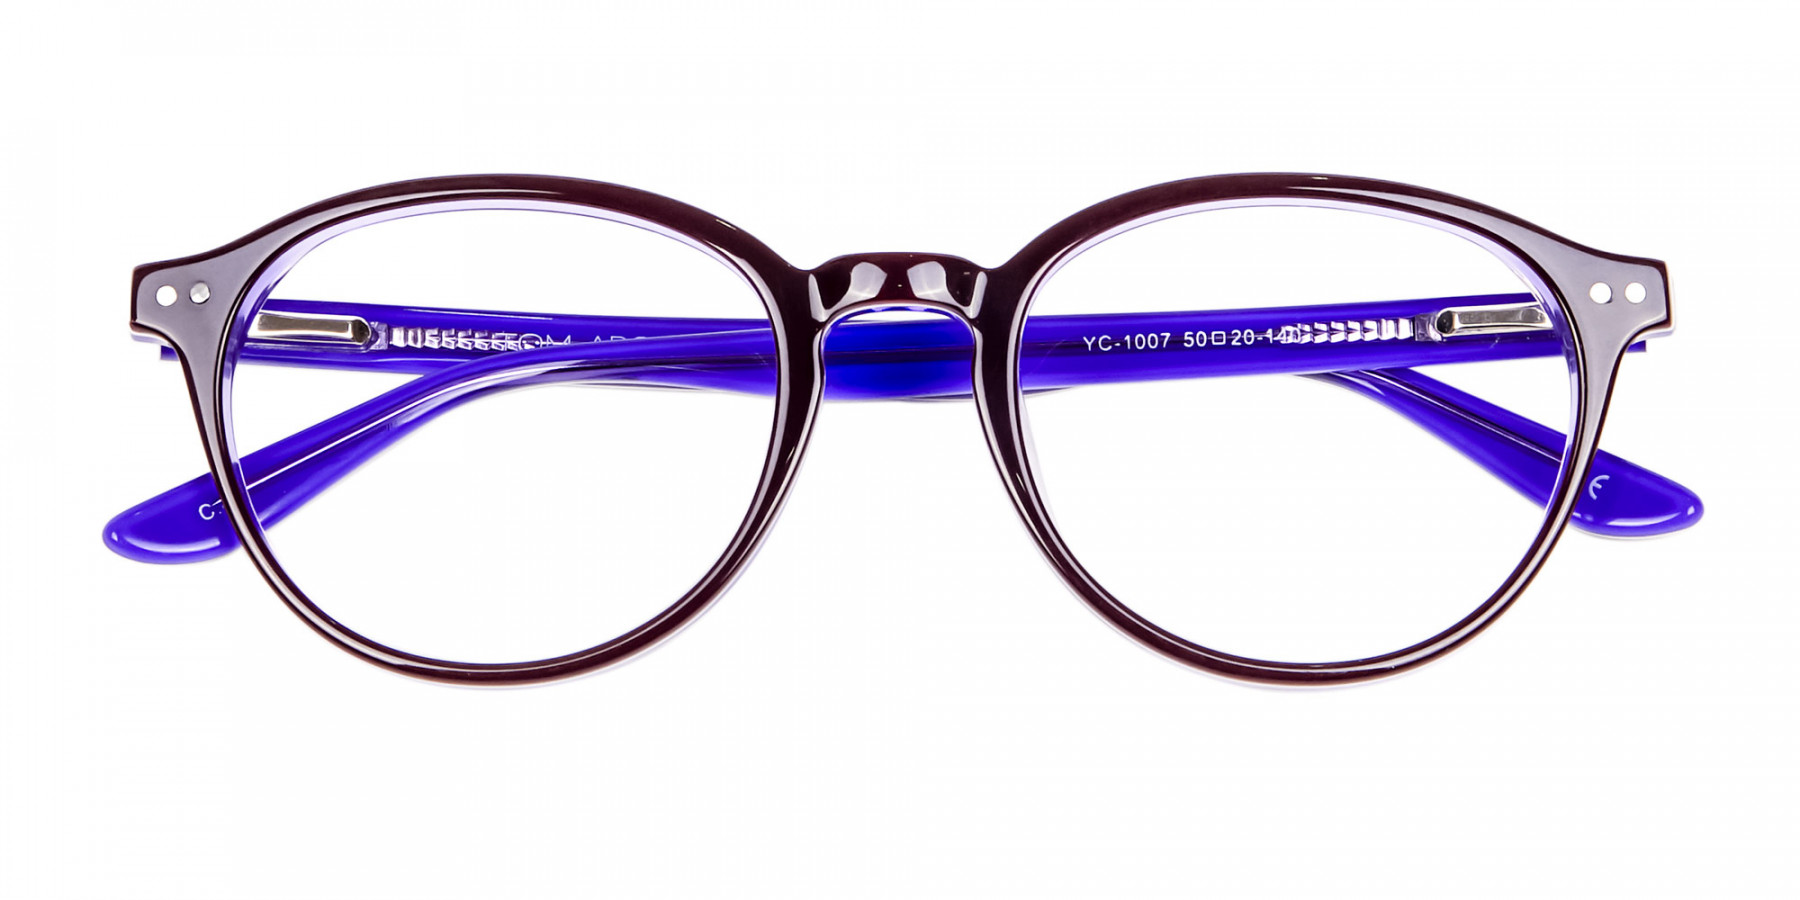 Black and Violet Glasses Online - 1